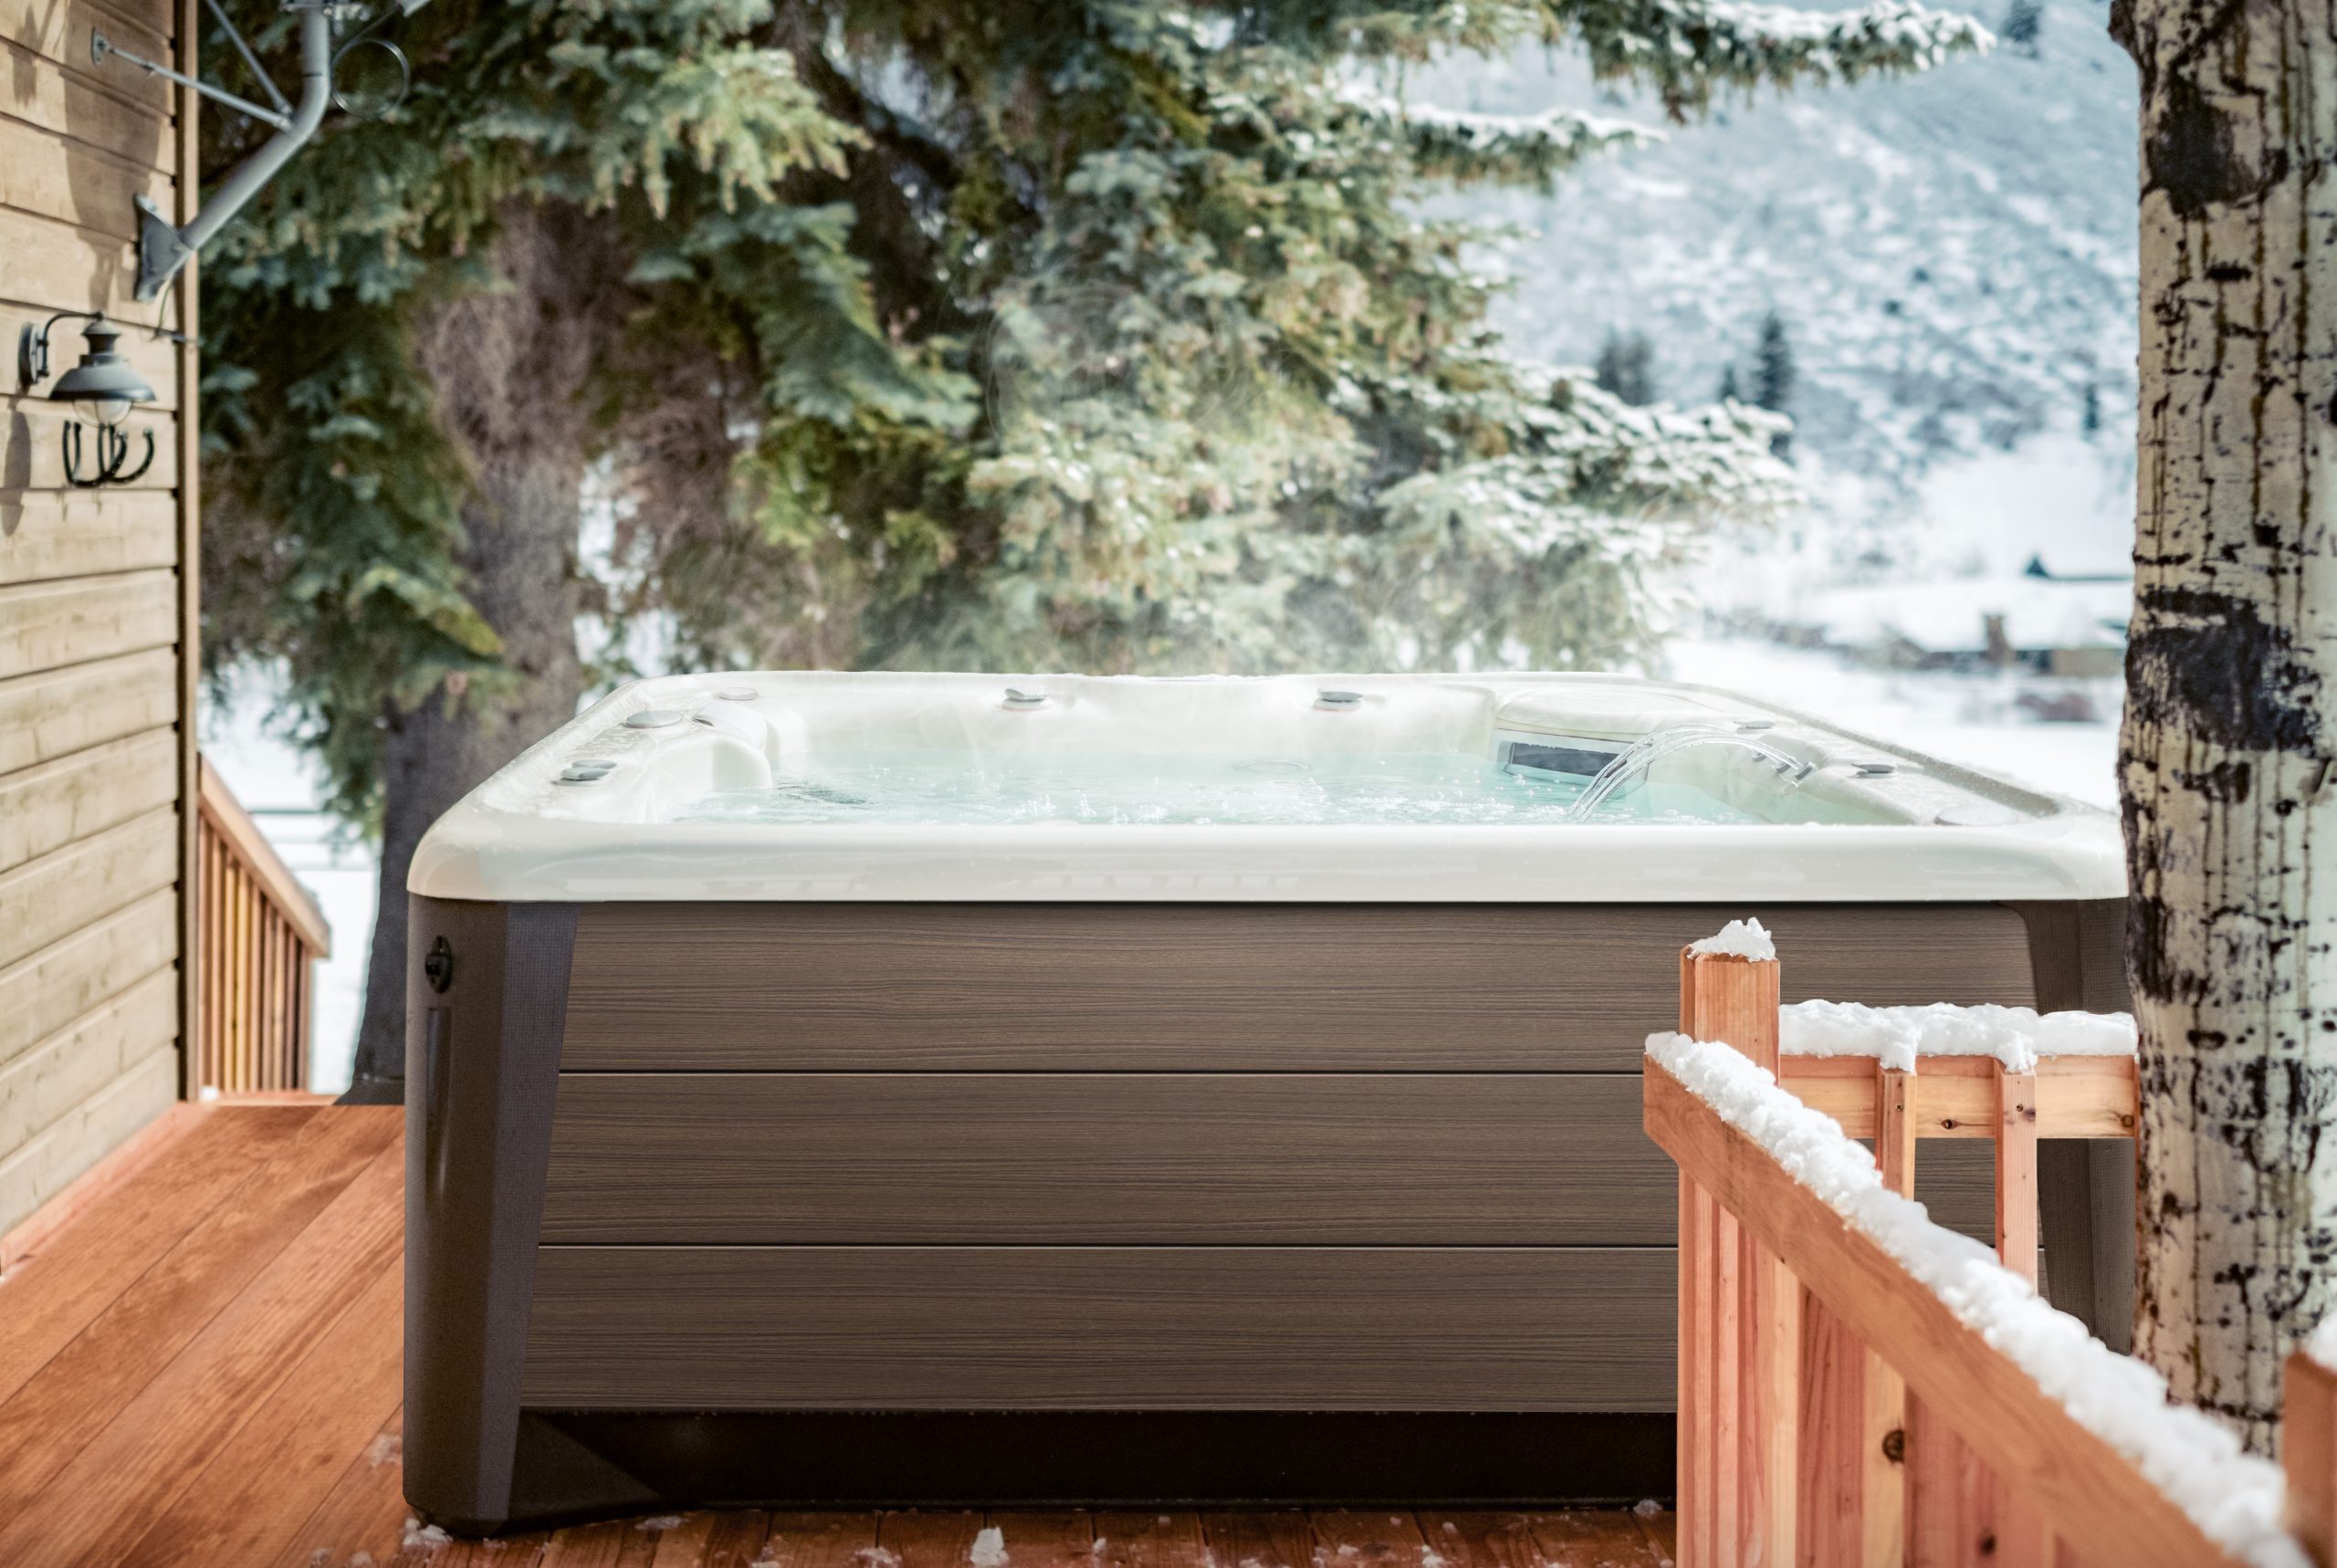 How To Beat The Winter Blues With A Hot Tub